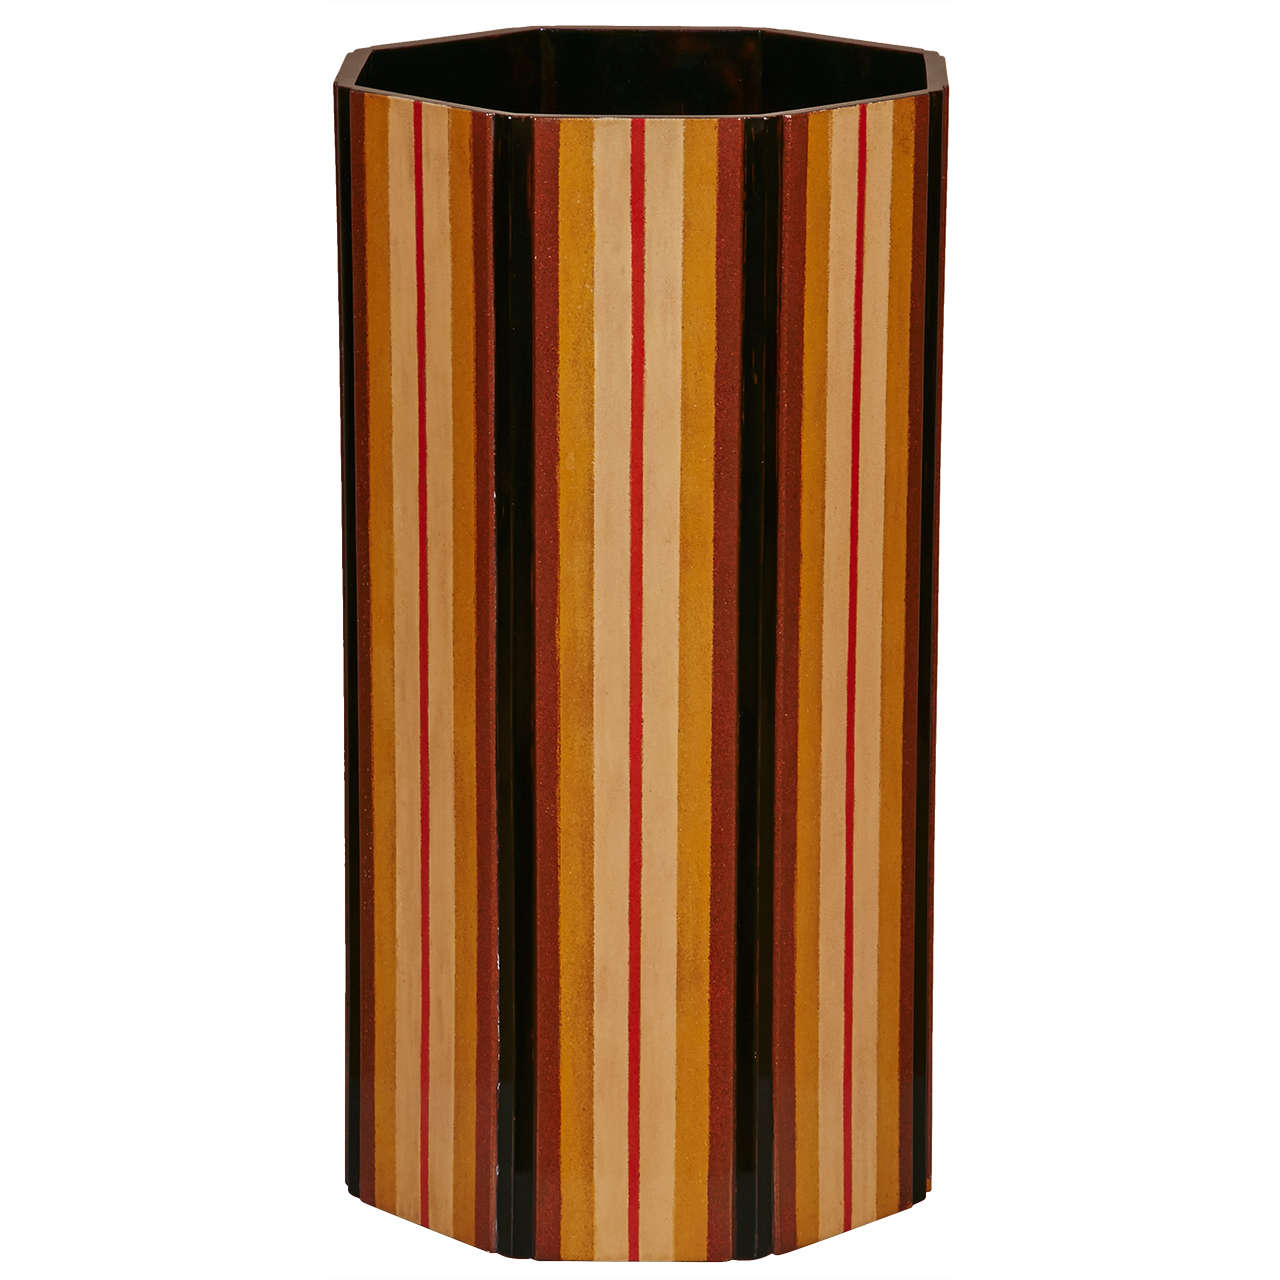 Japanese  Lacquer Vase With Stripe Design 1